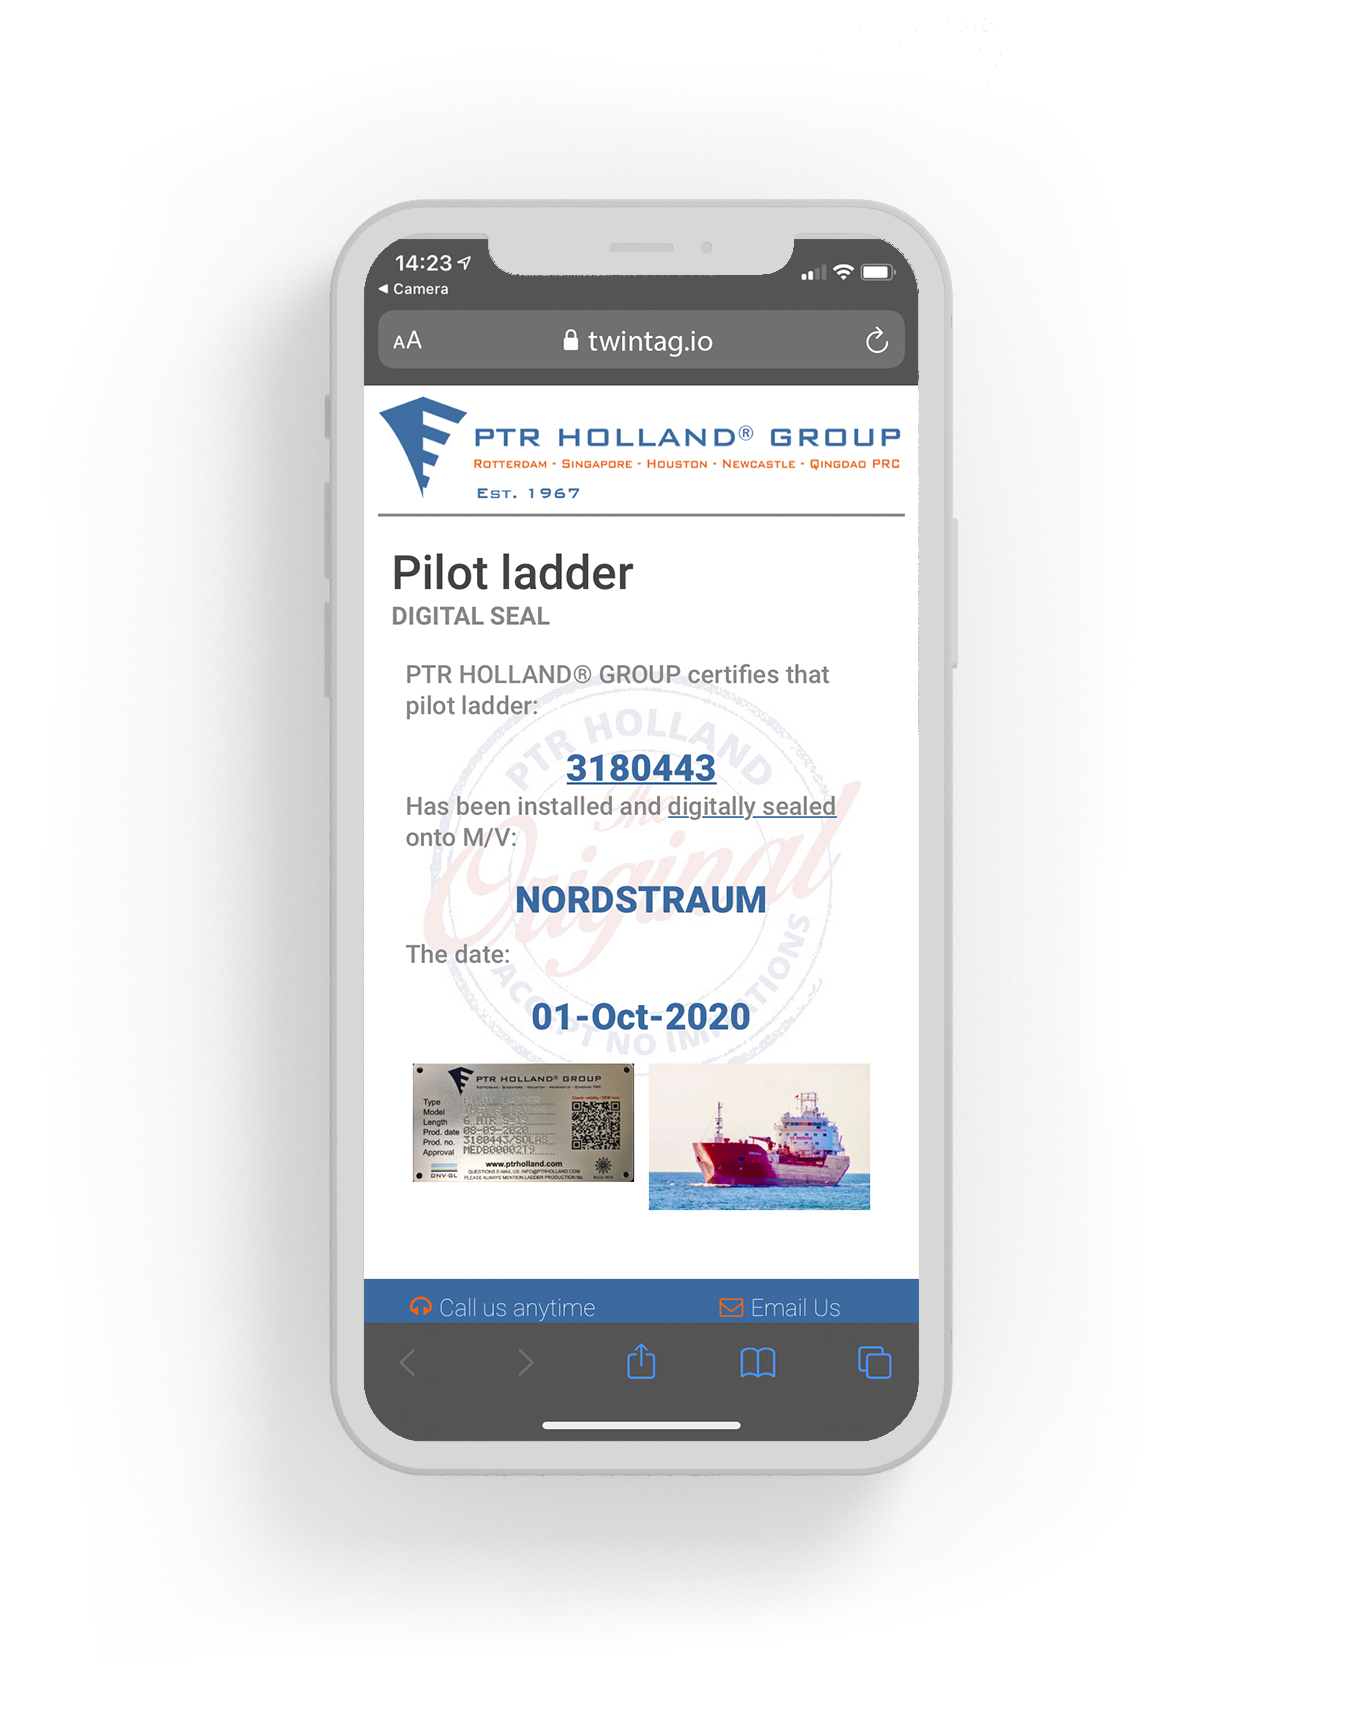 Smartphone mock-up with information on a ladder.